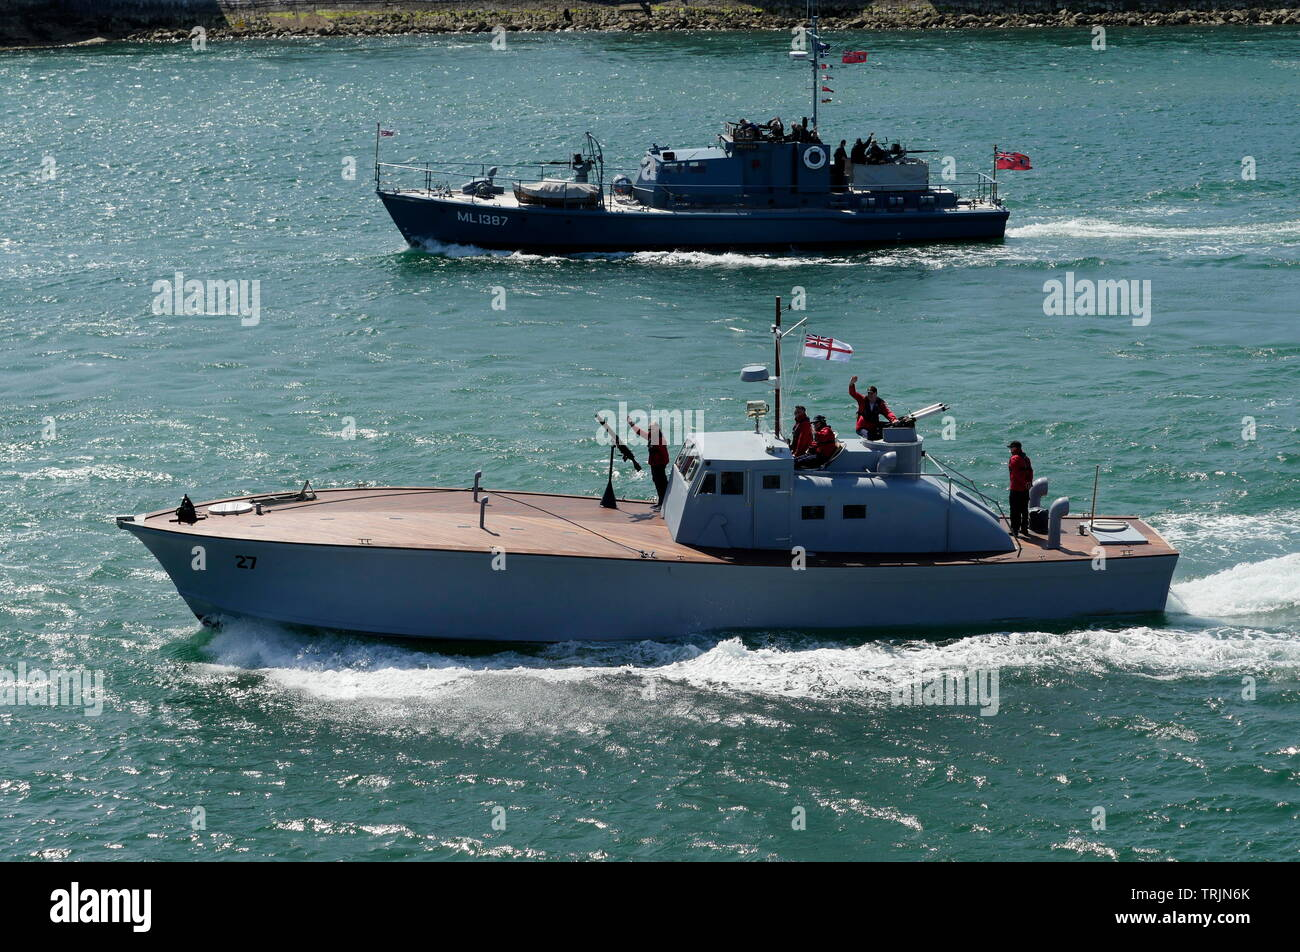 AJAXNETPHOTO. 3RD JUNE, 2019. PORTSMOUTH, ENGLAND. - RESTORED WARHORSE HEADS OUT - THE 63FT EX MA/SB 27 (MOTOR ANTI SUBMARINE BOAT) ORIGINALLY COMMISSIONED INTO THE ROYAL NAVY IN 1941, IS THE LATEST ADDITION TO THE PNBPT (PORTSMOUTH NAVAL BASE POWERBOAT TRUST) FOLLOWING A THREE YEAR RESTORATION TO WARTIME CONFIGURATION BY D-DAY REVISITED CHARITY. SEEN HERE OUTWARD BOUND TO NORMANDY AS PART OF THE 75TH D-DAY ANNIVERSARY FLOTILLA IN COMPANY WITH THE RESTORED HDML 1387 (HARBOUR DEFENCE MOTOR LAUNCH) MEDUSA (TOP). PHOTO;JONATHAN EASTLAND/AJAX REF; GX8_190306_352 - Stock Image